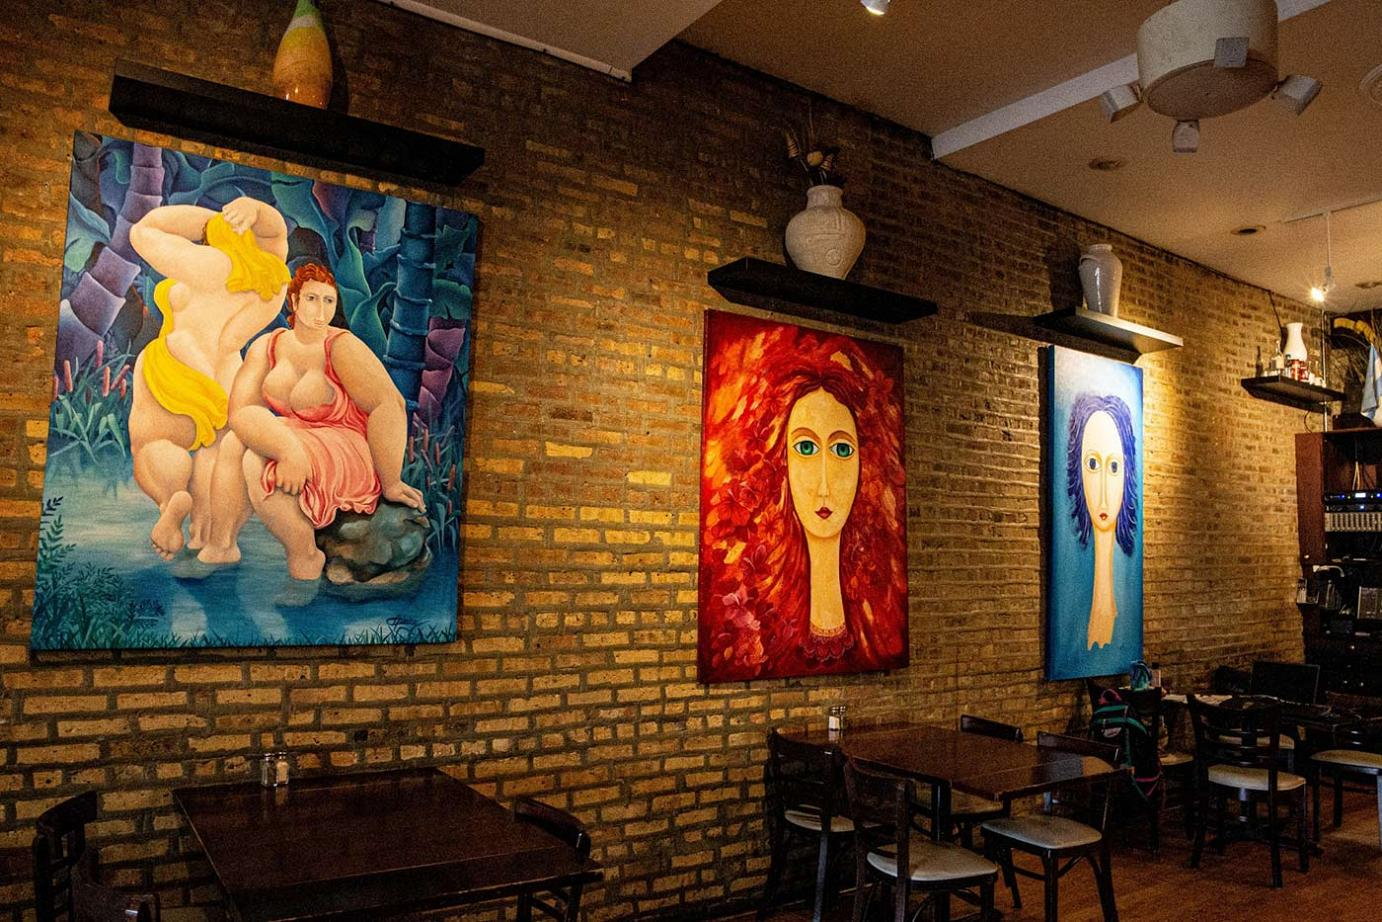 Restaurant interior with art on the wall